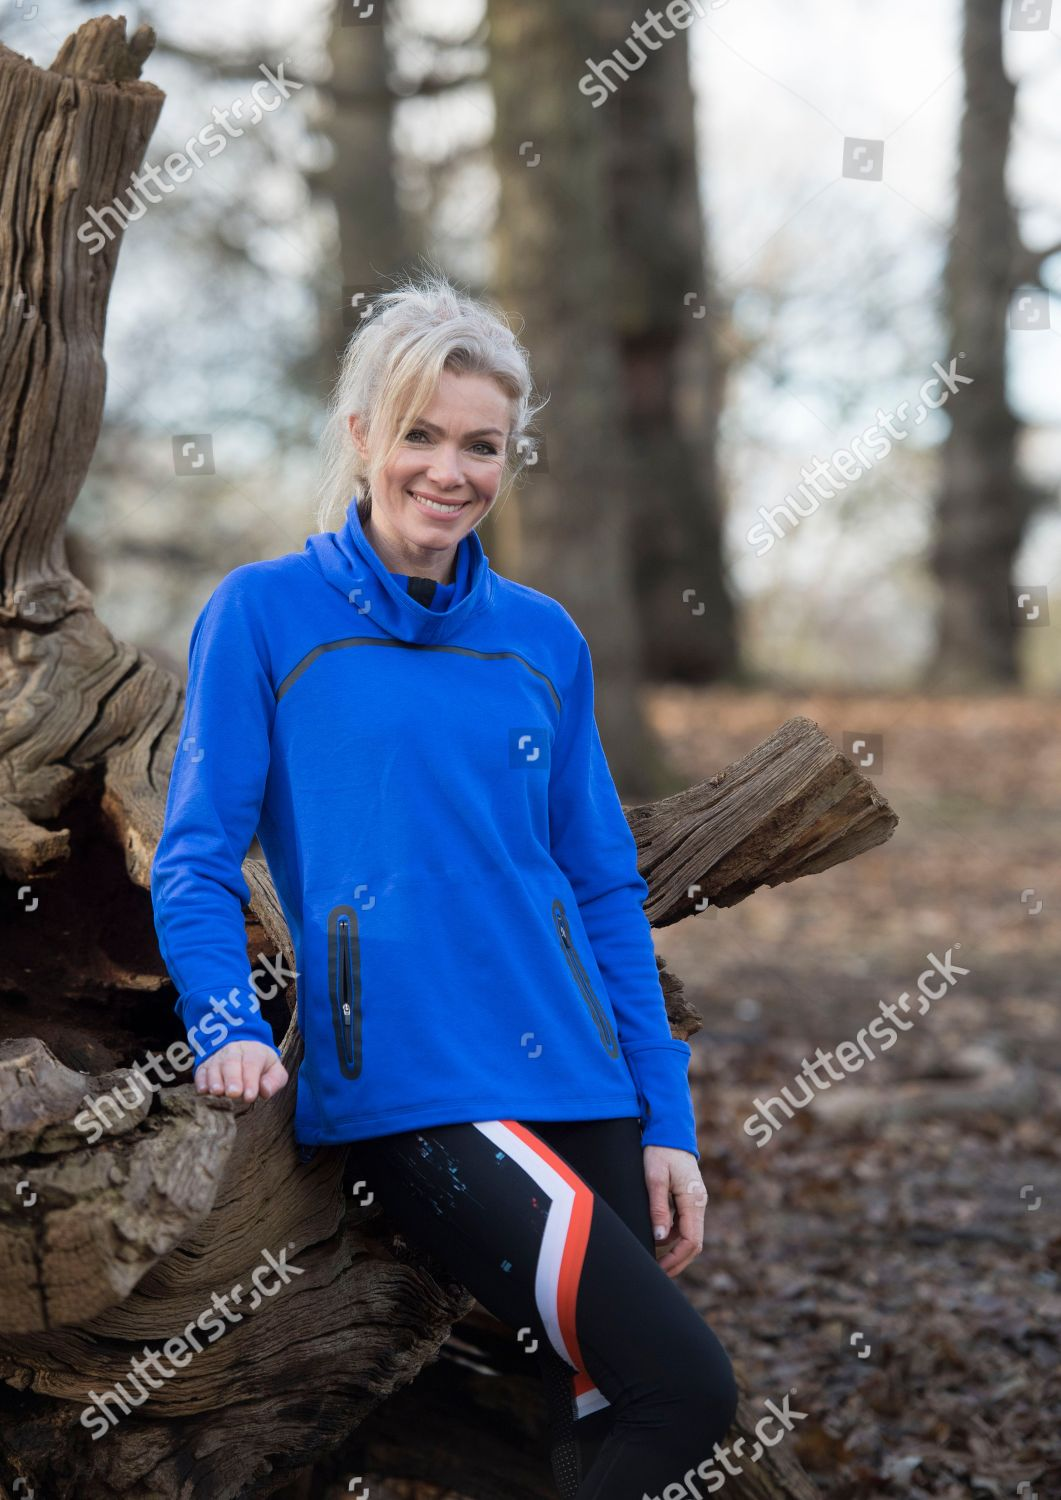 Nell mcandrew speedo swimwear photo shoot well understand